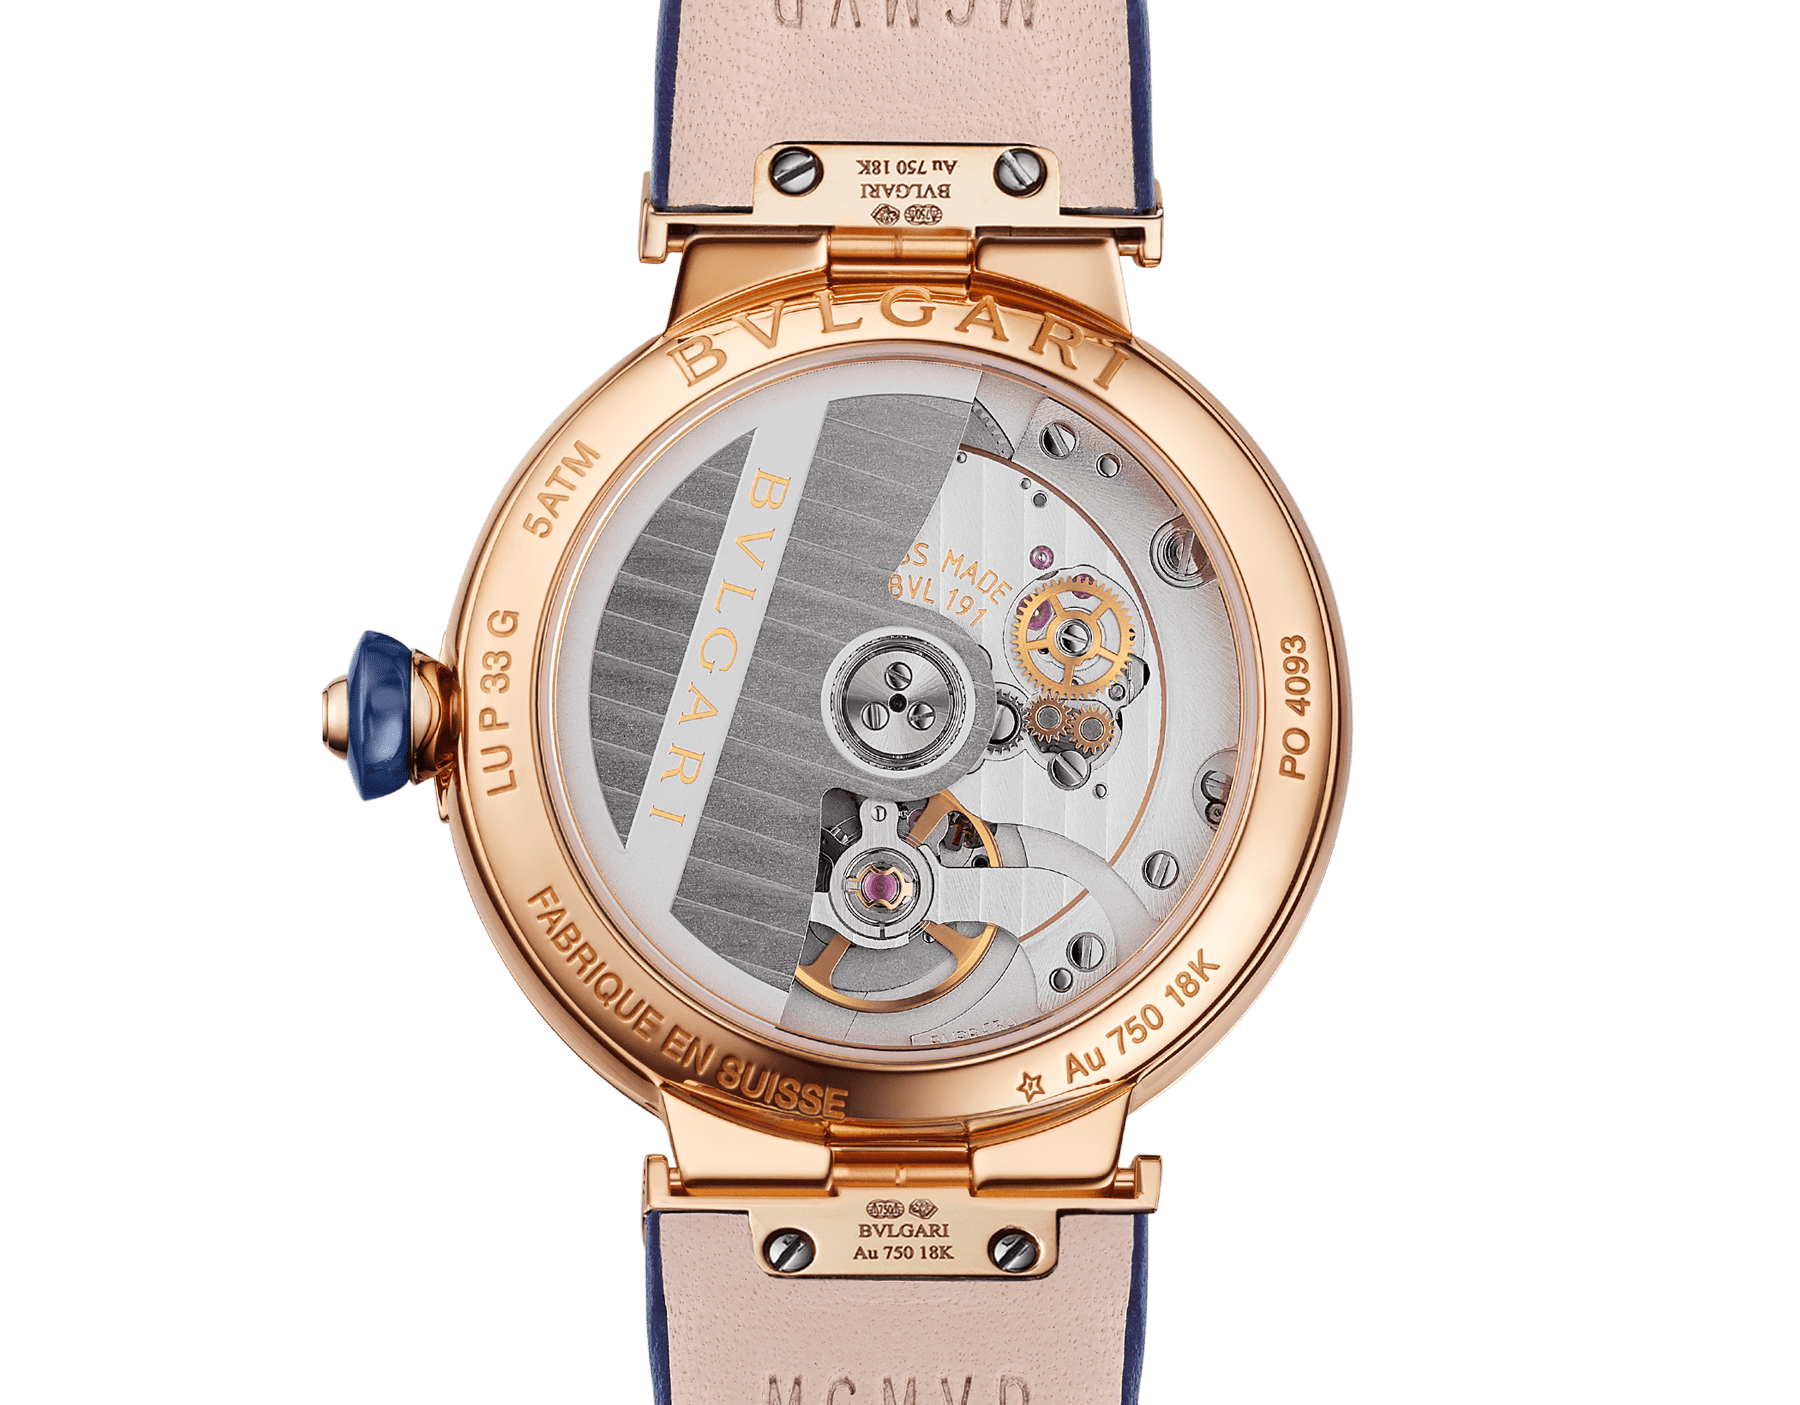 LVCEA watch with mechanical movement and automatic winding, polished 18 kt rose gold case and links both set with round brilliant-cut diamonds, blue aventurine dial and blue alligator bracelet. Water-resistant up to 30 metres. 103341 image 4